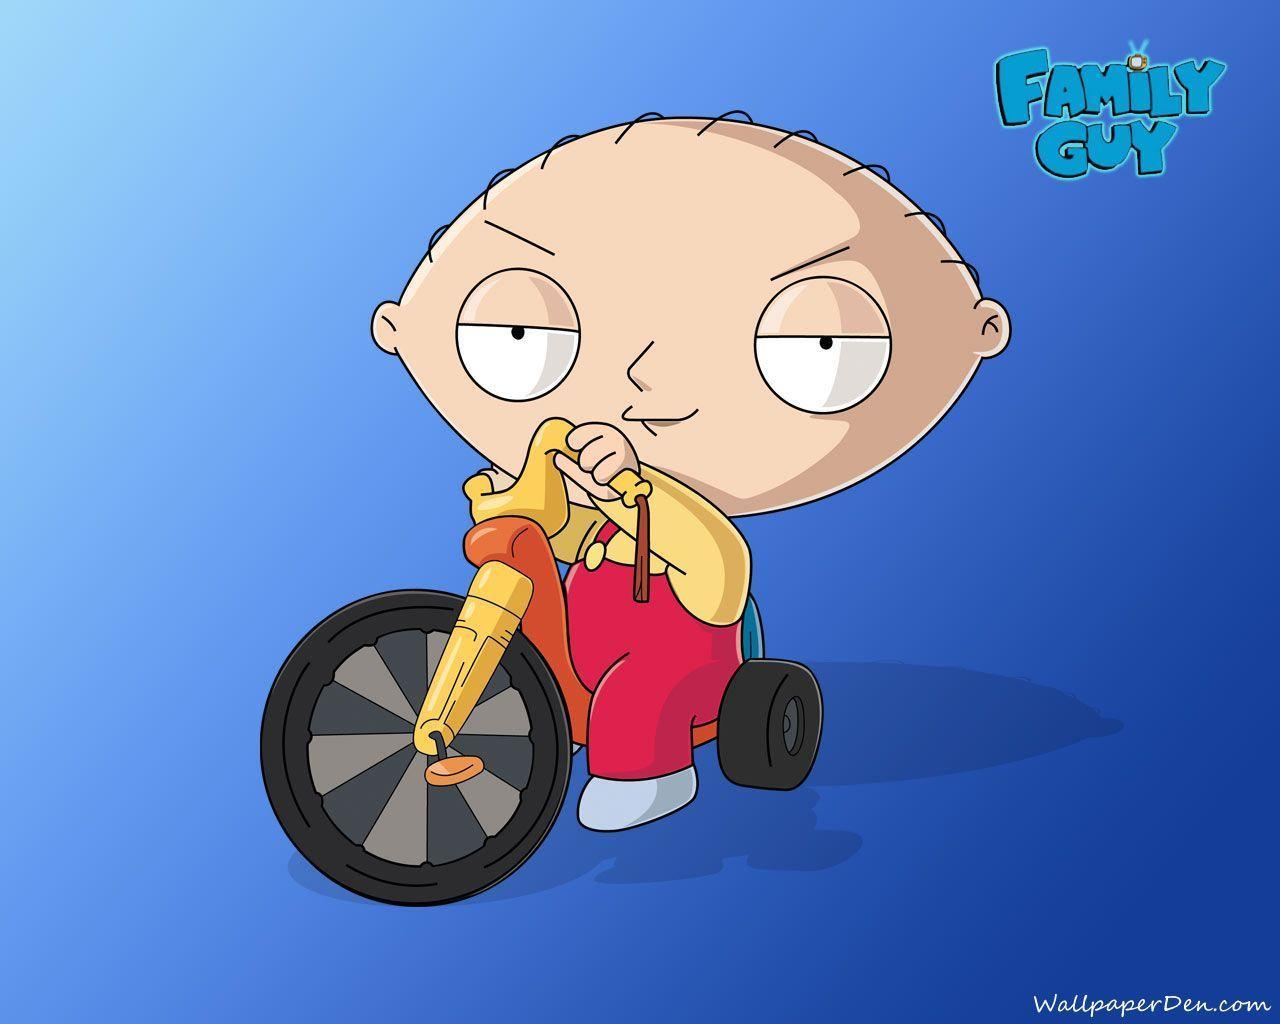 100 Photos of Cool Stewie Pictures